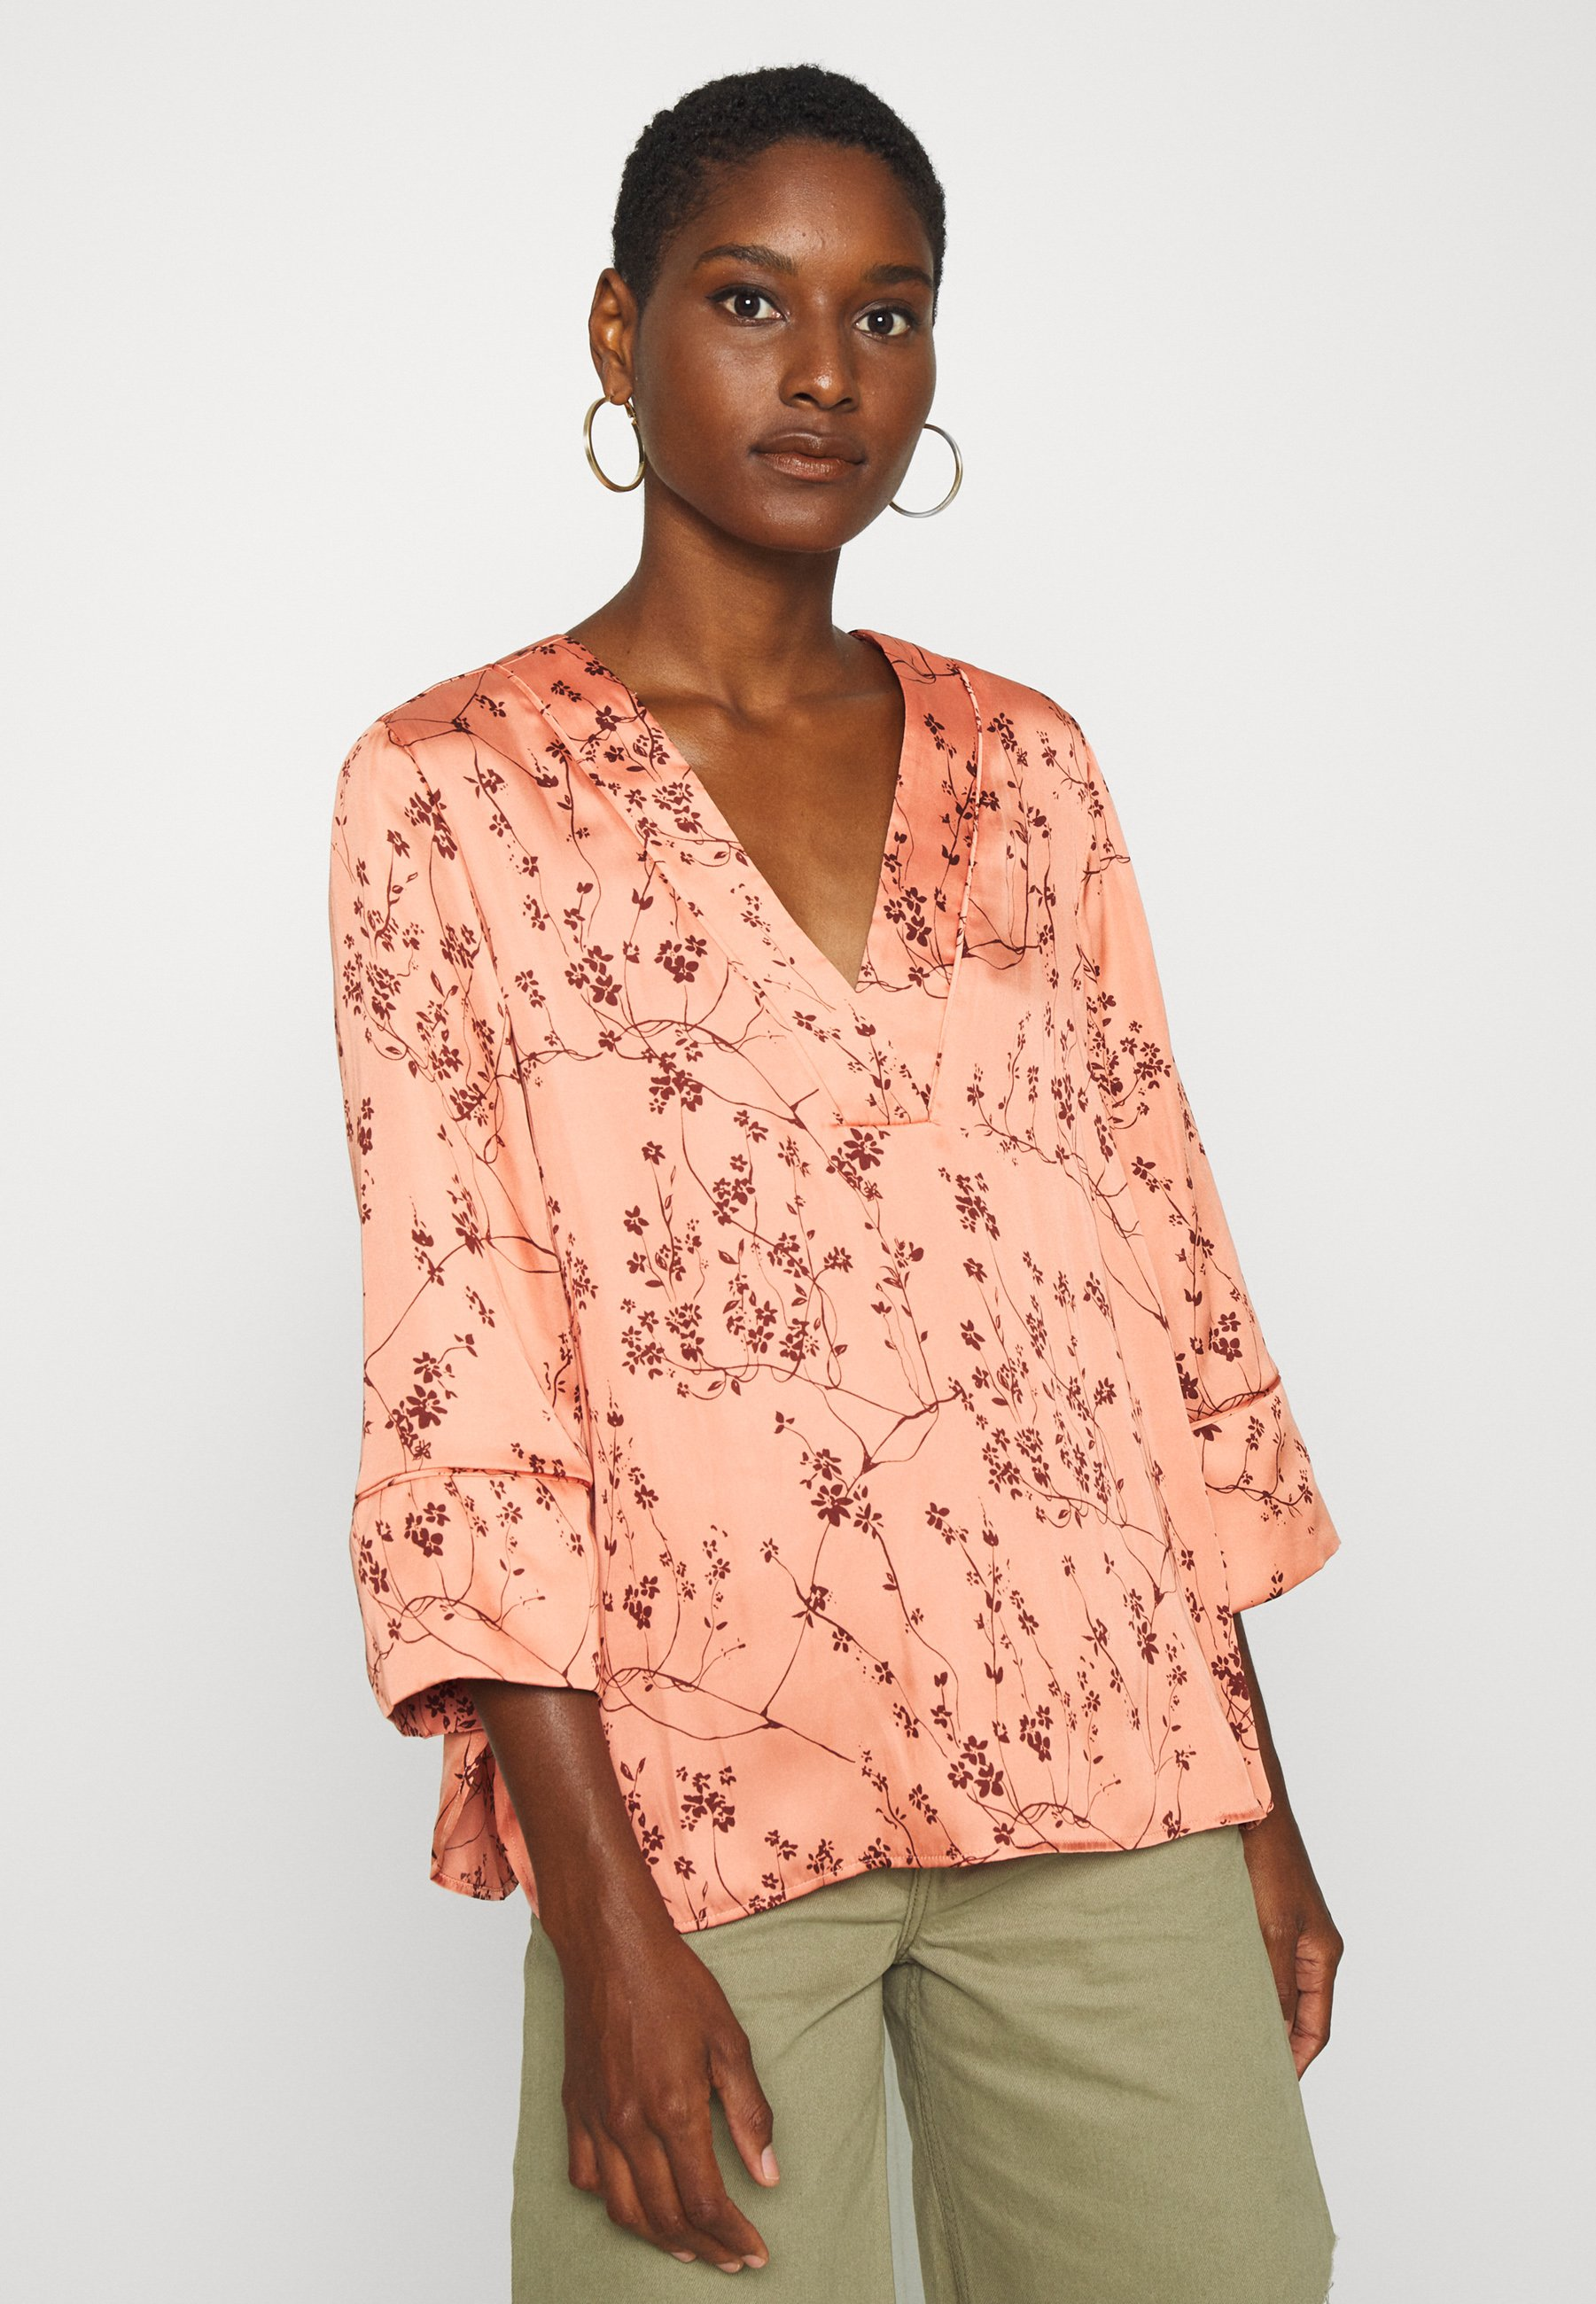 Clean And Classic Women's Clothing Twist & Tango NELL BLOUSE Blouse peach nMBZx7Jnv